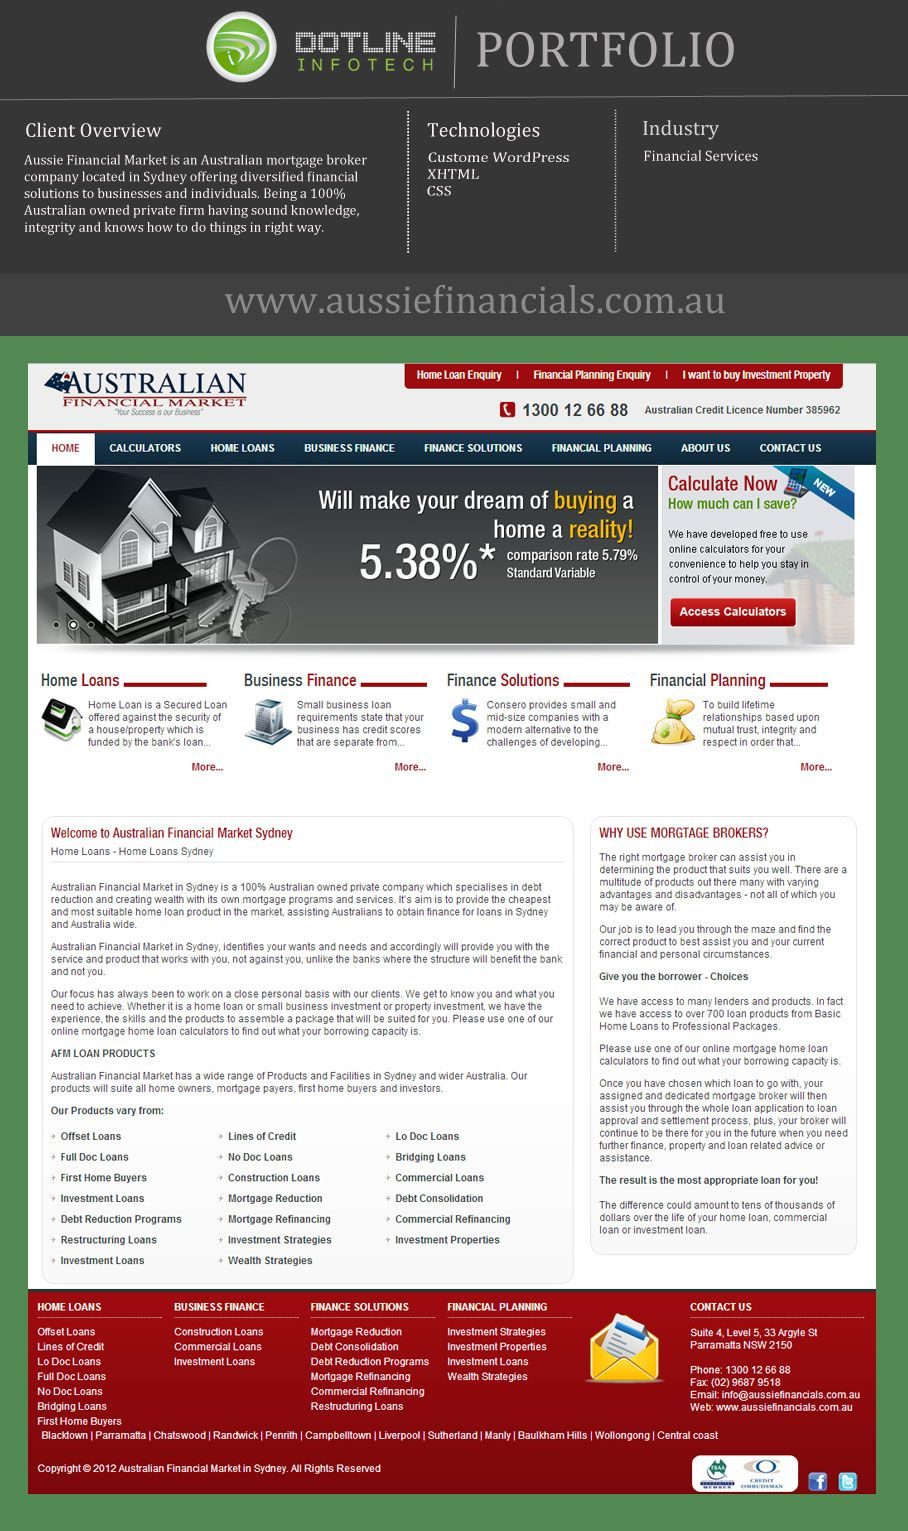 Aussie Financial Market Specializes In Debt Reduction And Creating Wealth With Its Own Mortgage Website Design Company Finance Loans Digital Marketing Company